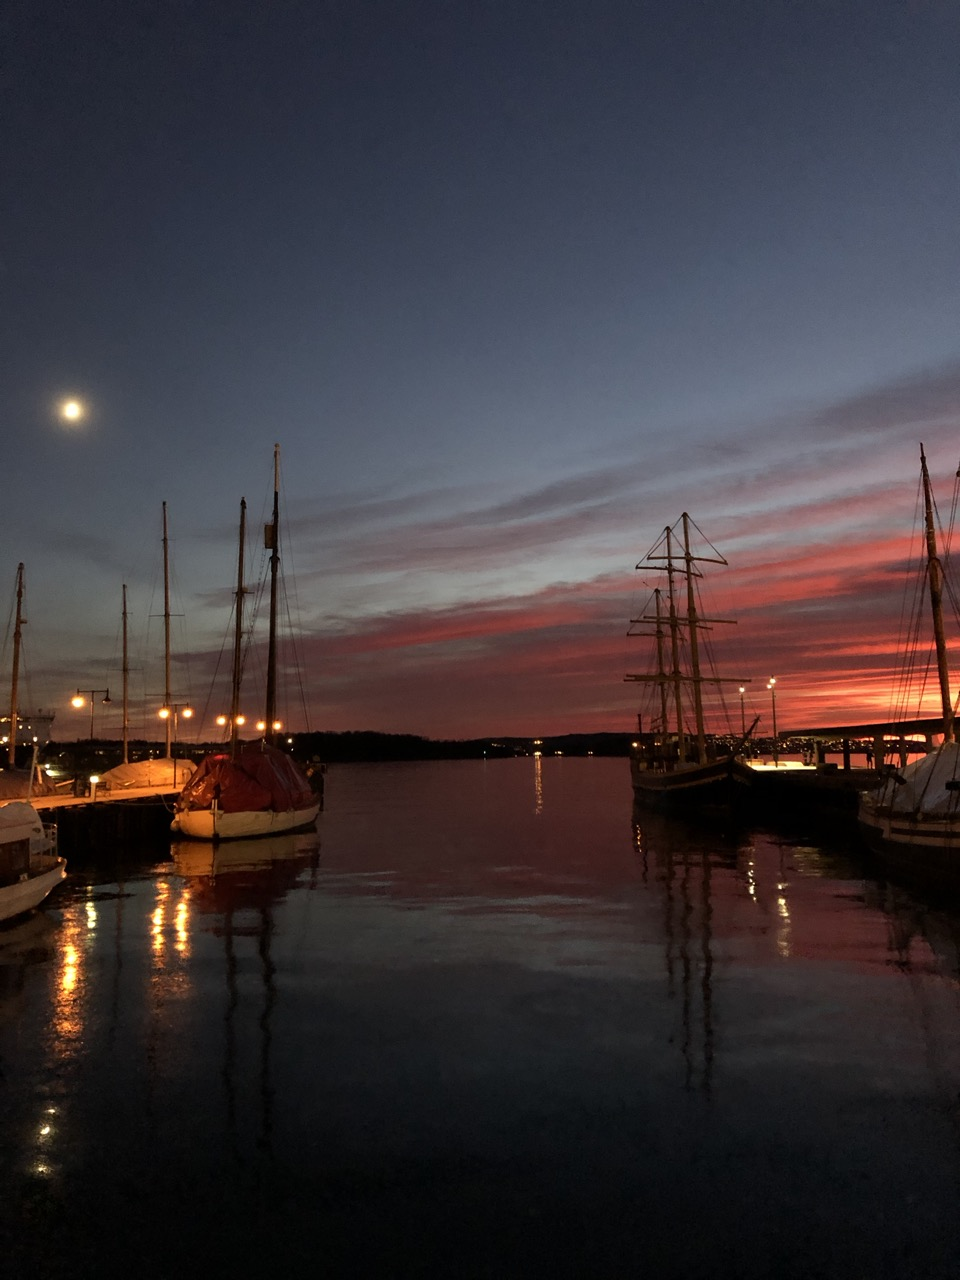 Sunset in Oslo, Norway